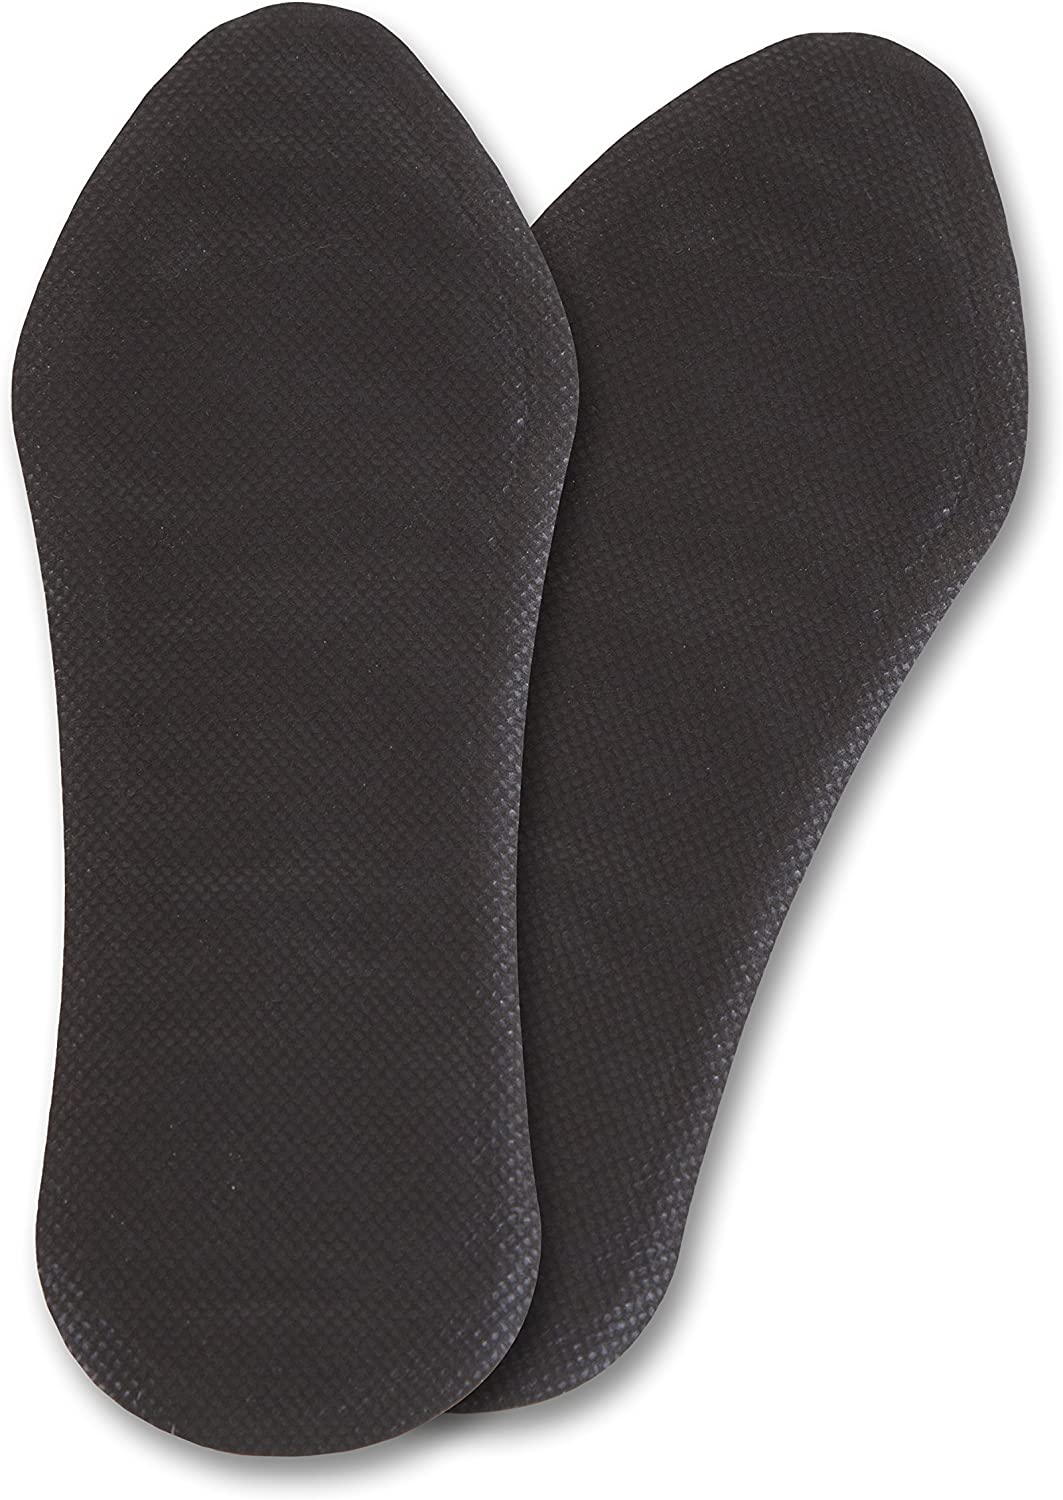 Long Lasting Safe Natural Odorless Air Activat... HotHands Insole Foot Warmers